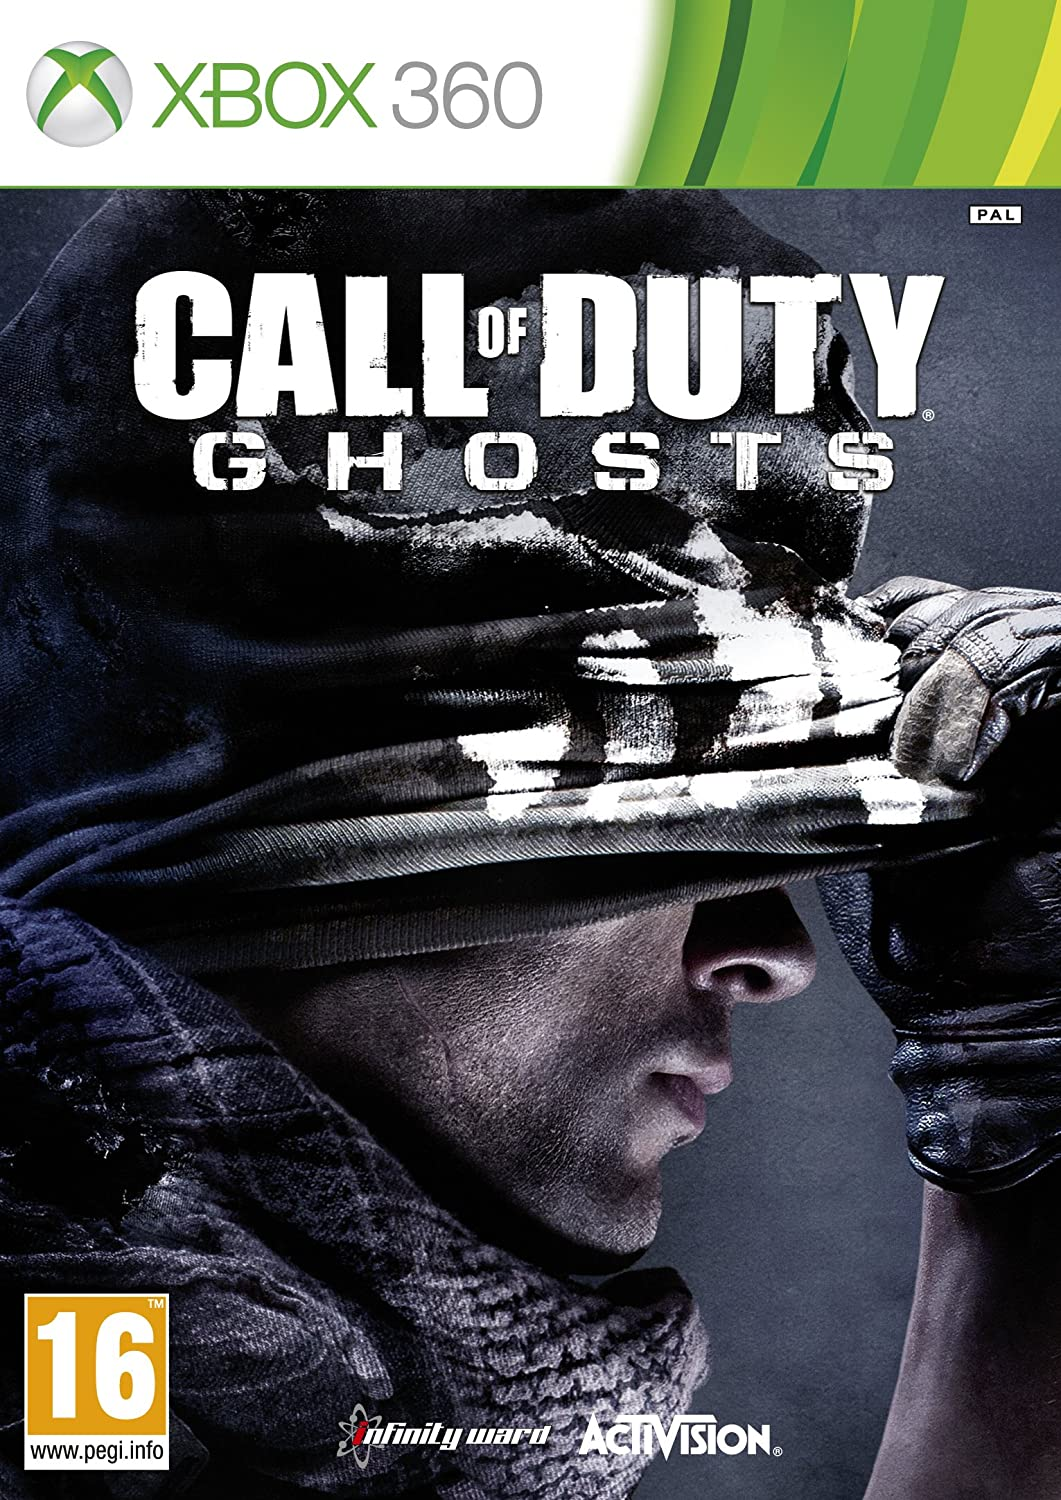 Call of Duty - Amazon